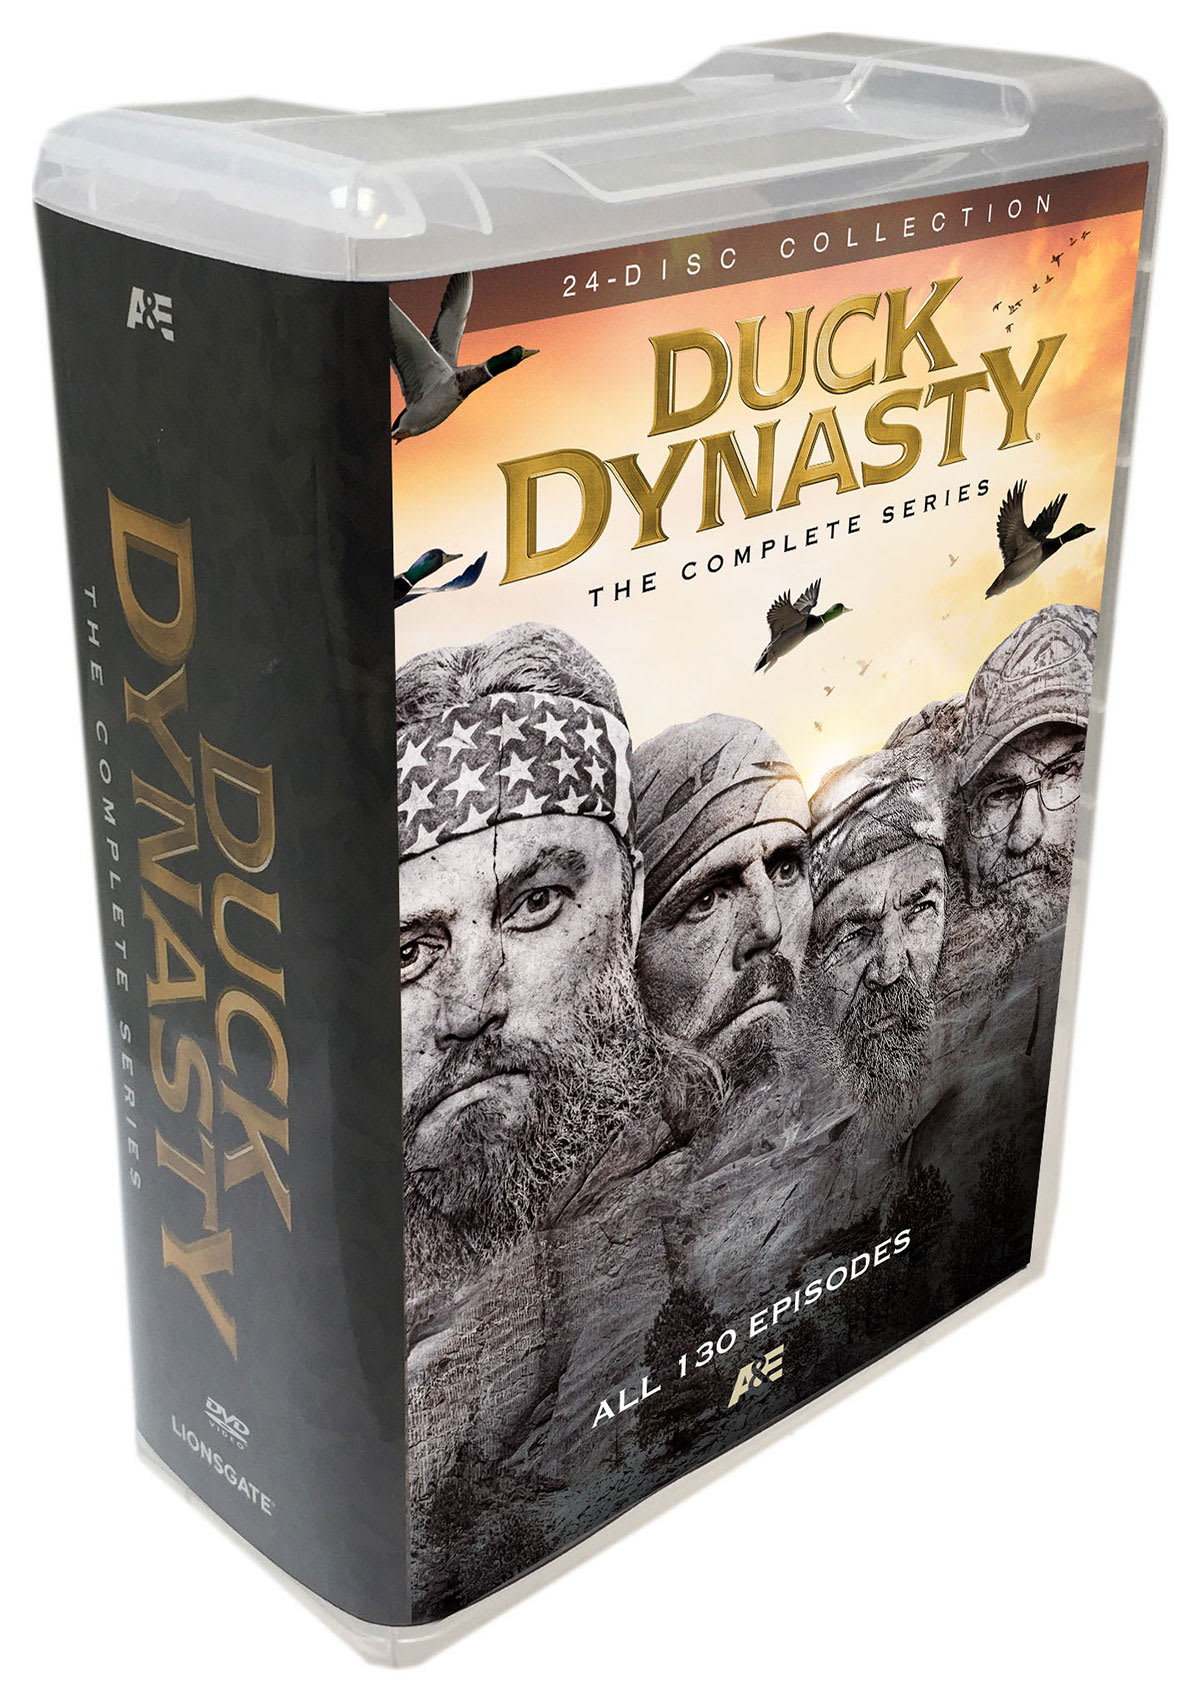 Duck Dynasty: The Complete Series [DVD]